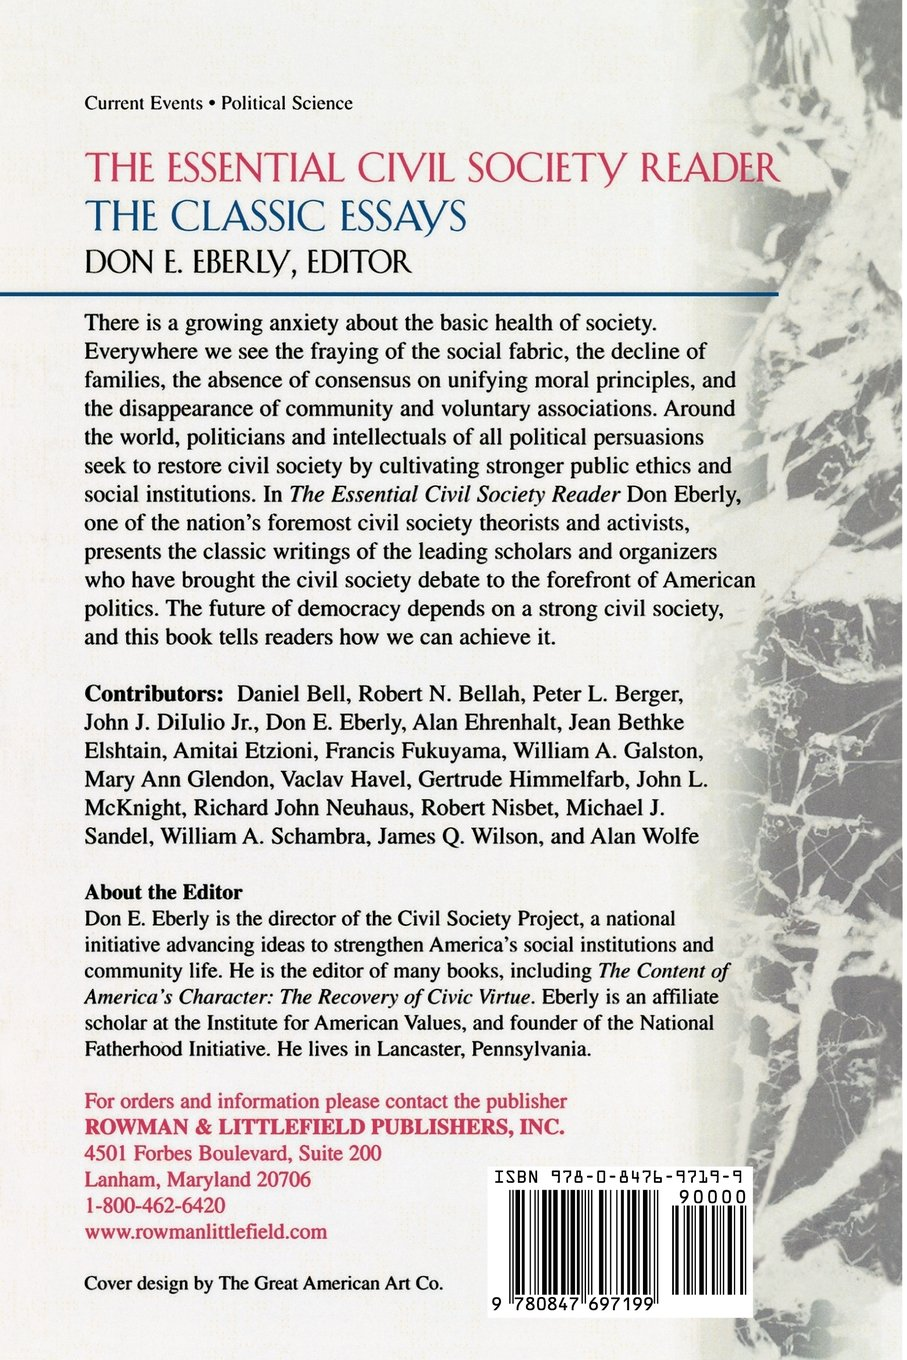 the essential civil society reader the classic essays don e the essential civil society reader the classic essays don e eberly daniel bell robert bellah peter berger john dilulio allan ehrenhalt